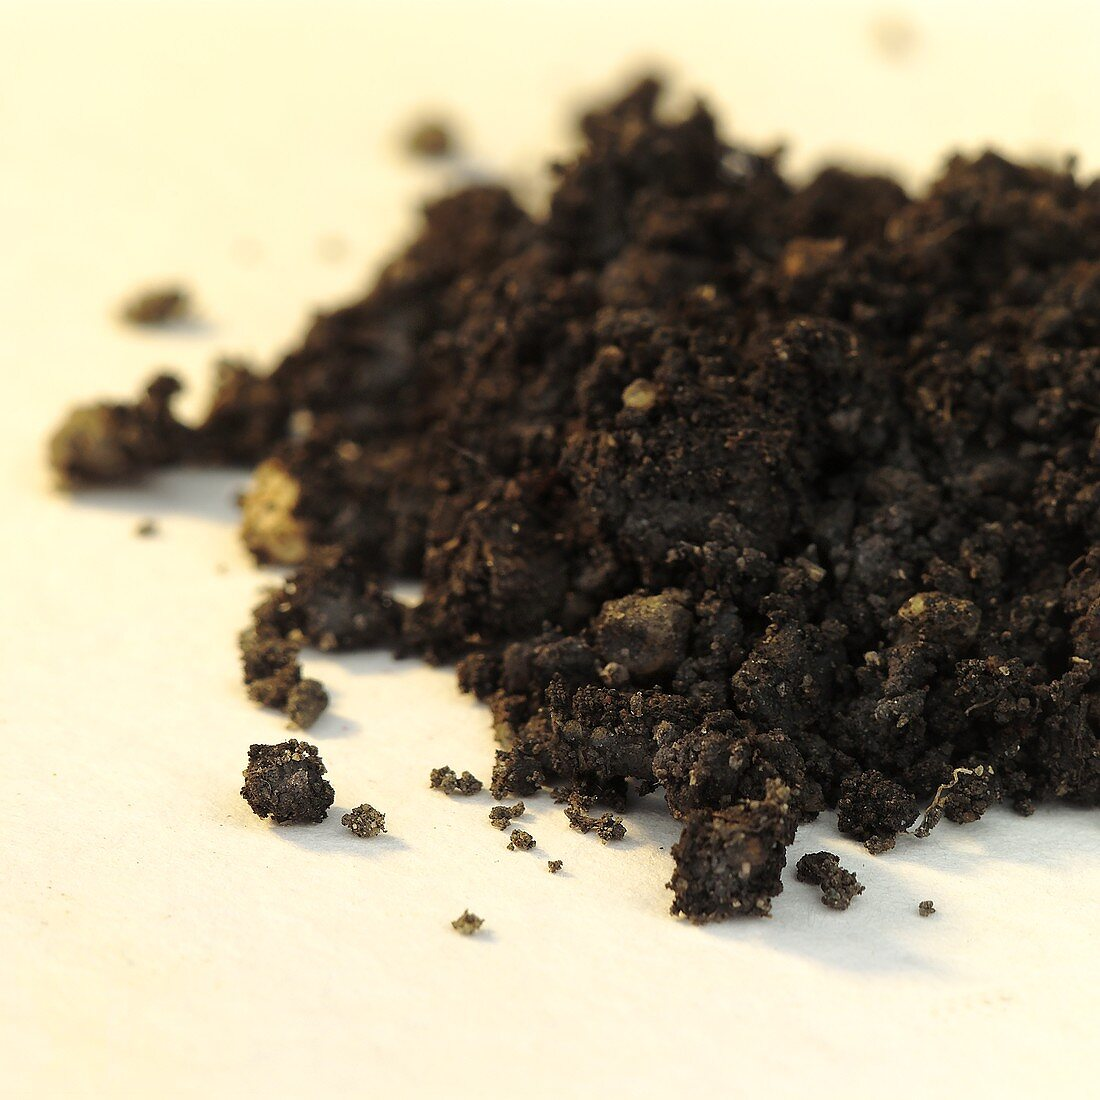 A pile of earth